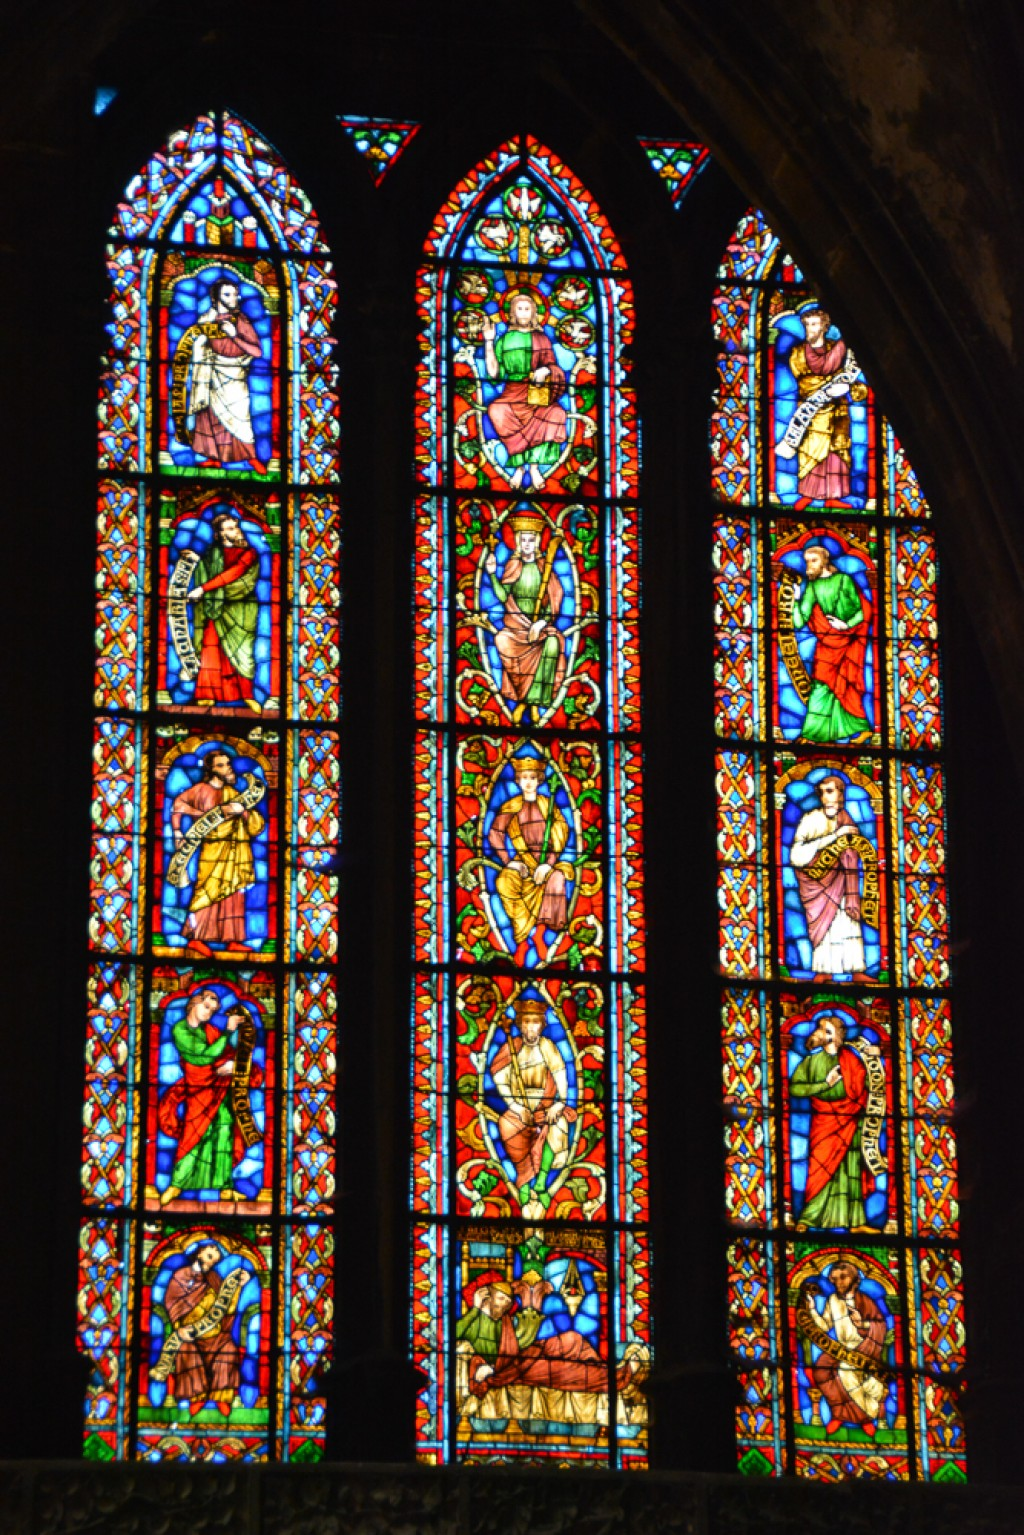 On our way in to Paris, we stopped by Metz and checked out the Cathedrale St-Etienne and it's fabulous Chagall stained glass windows.